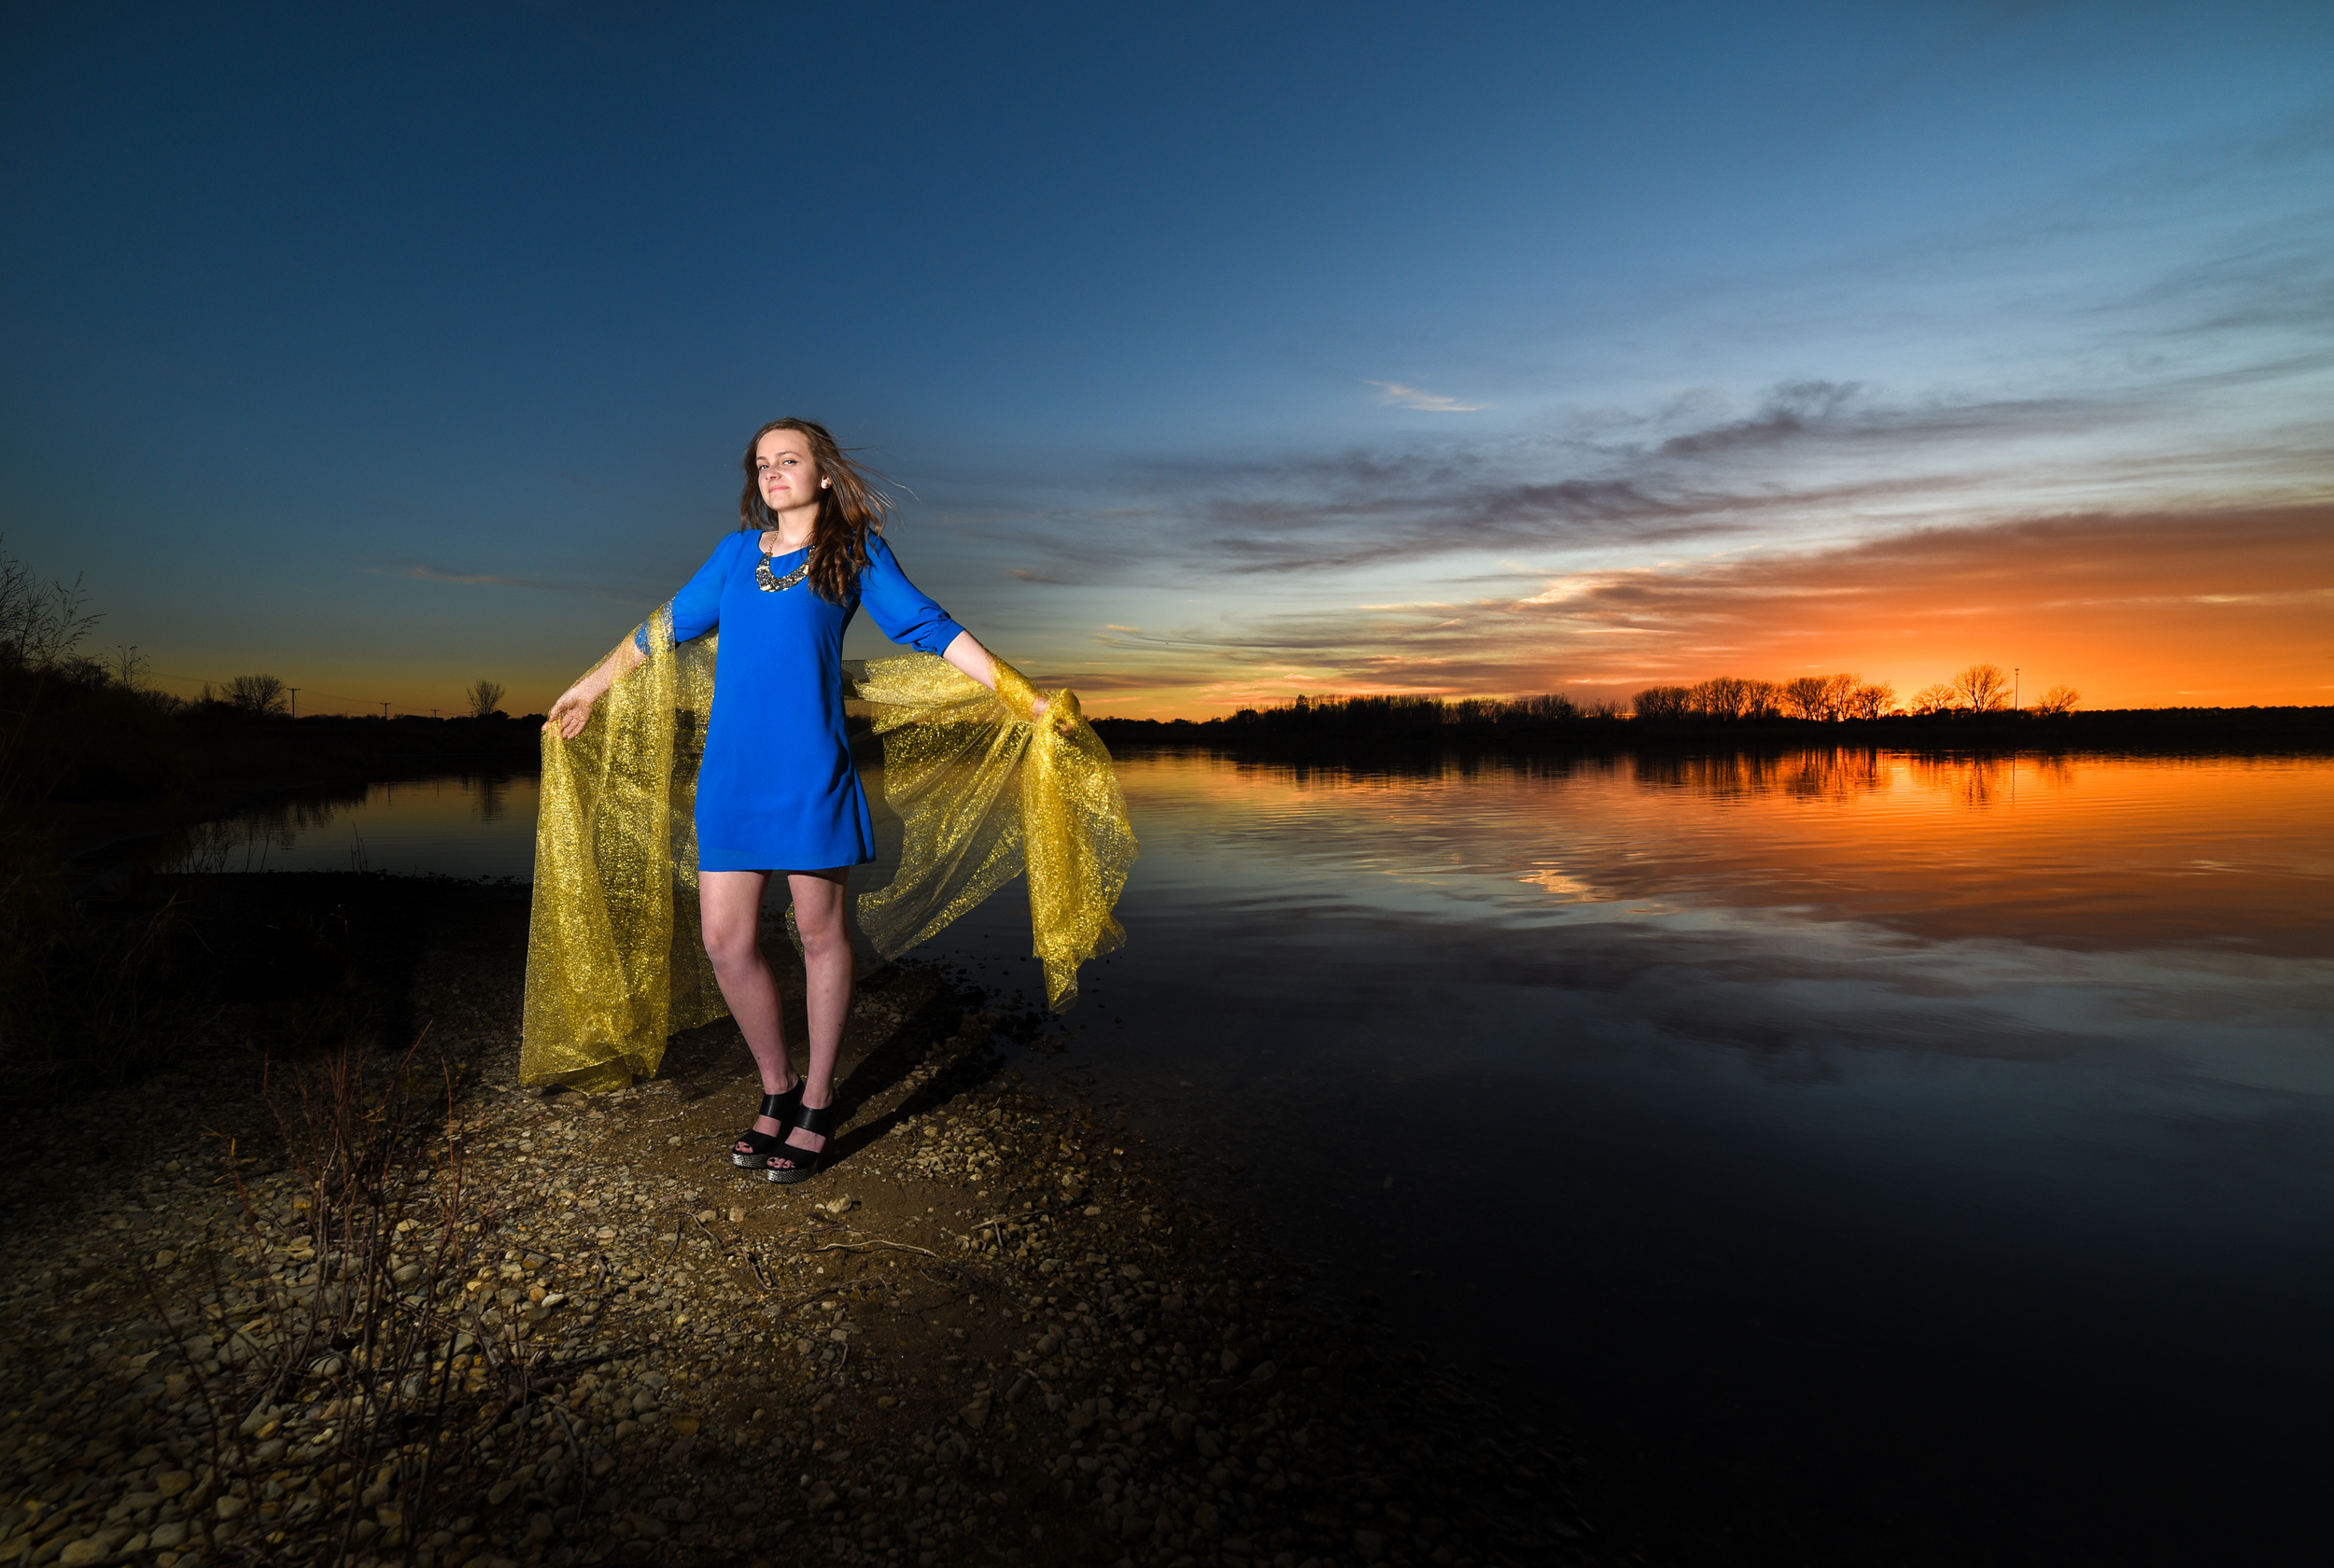 Shooting at sunset and underexposing by 1-2 stops gets really saturated colors making it really 'pop'.